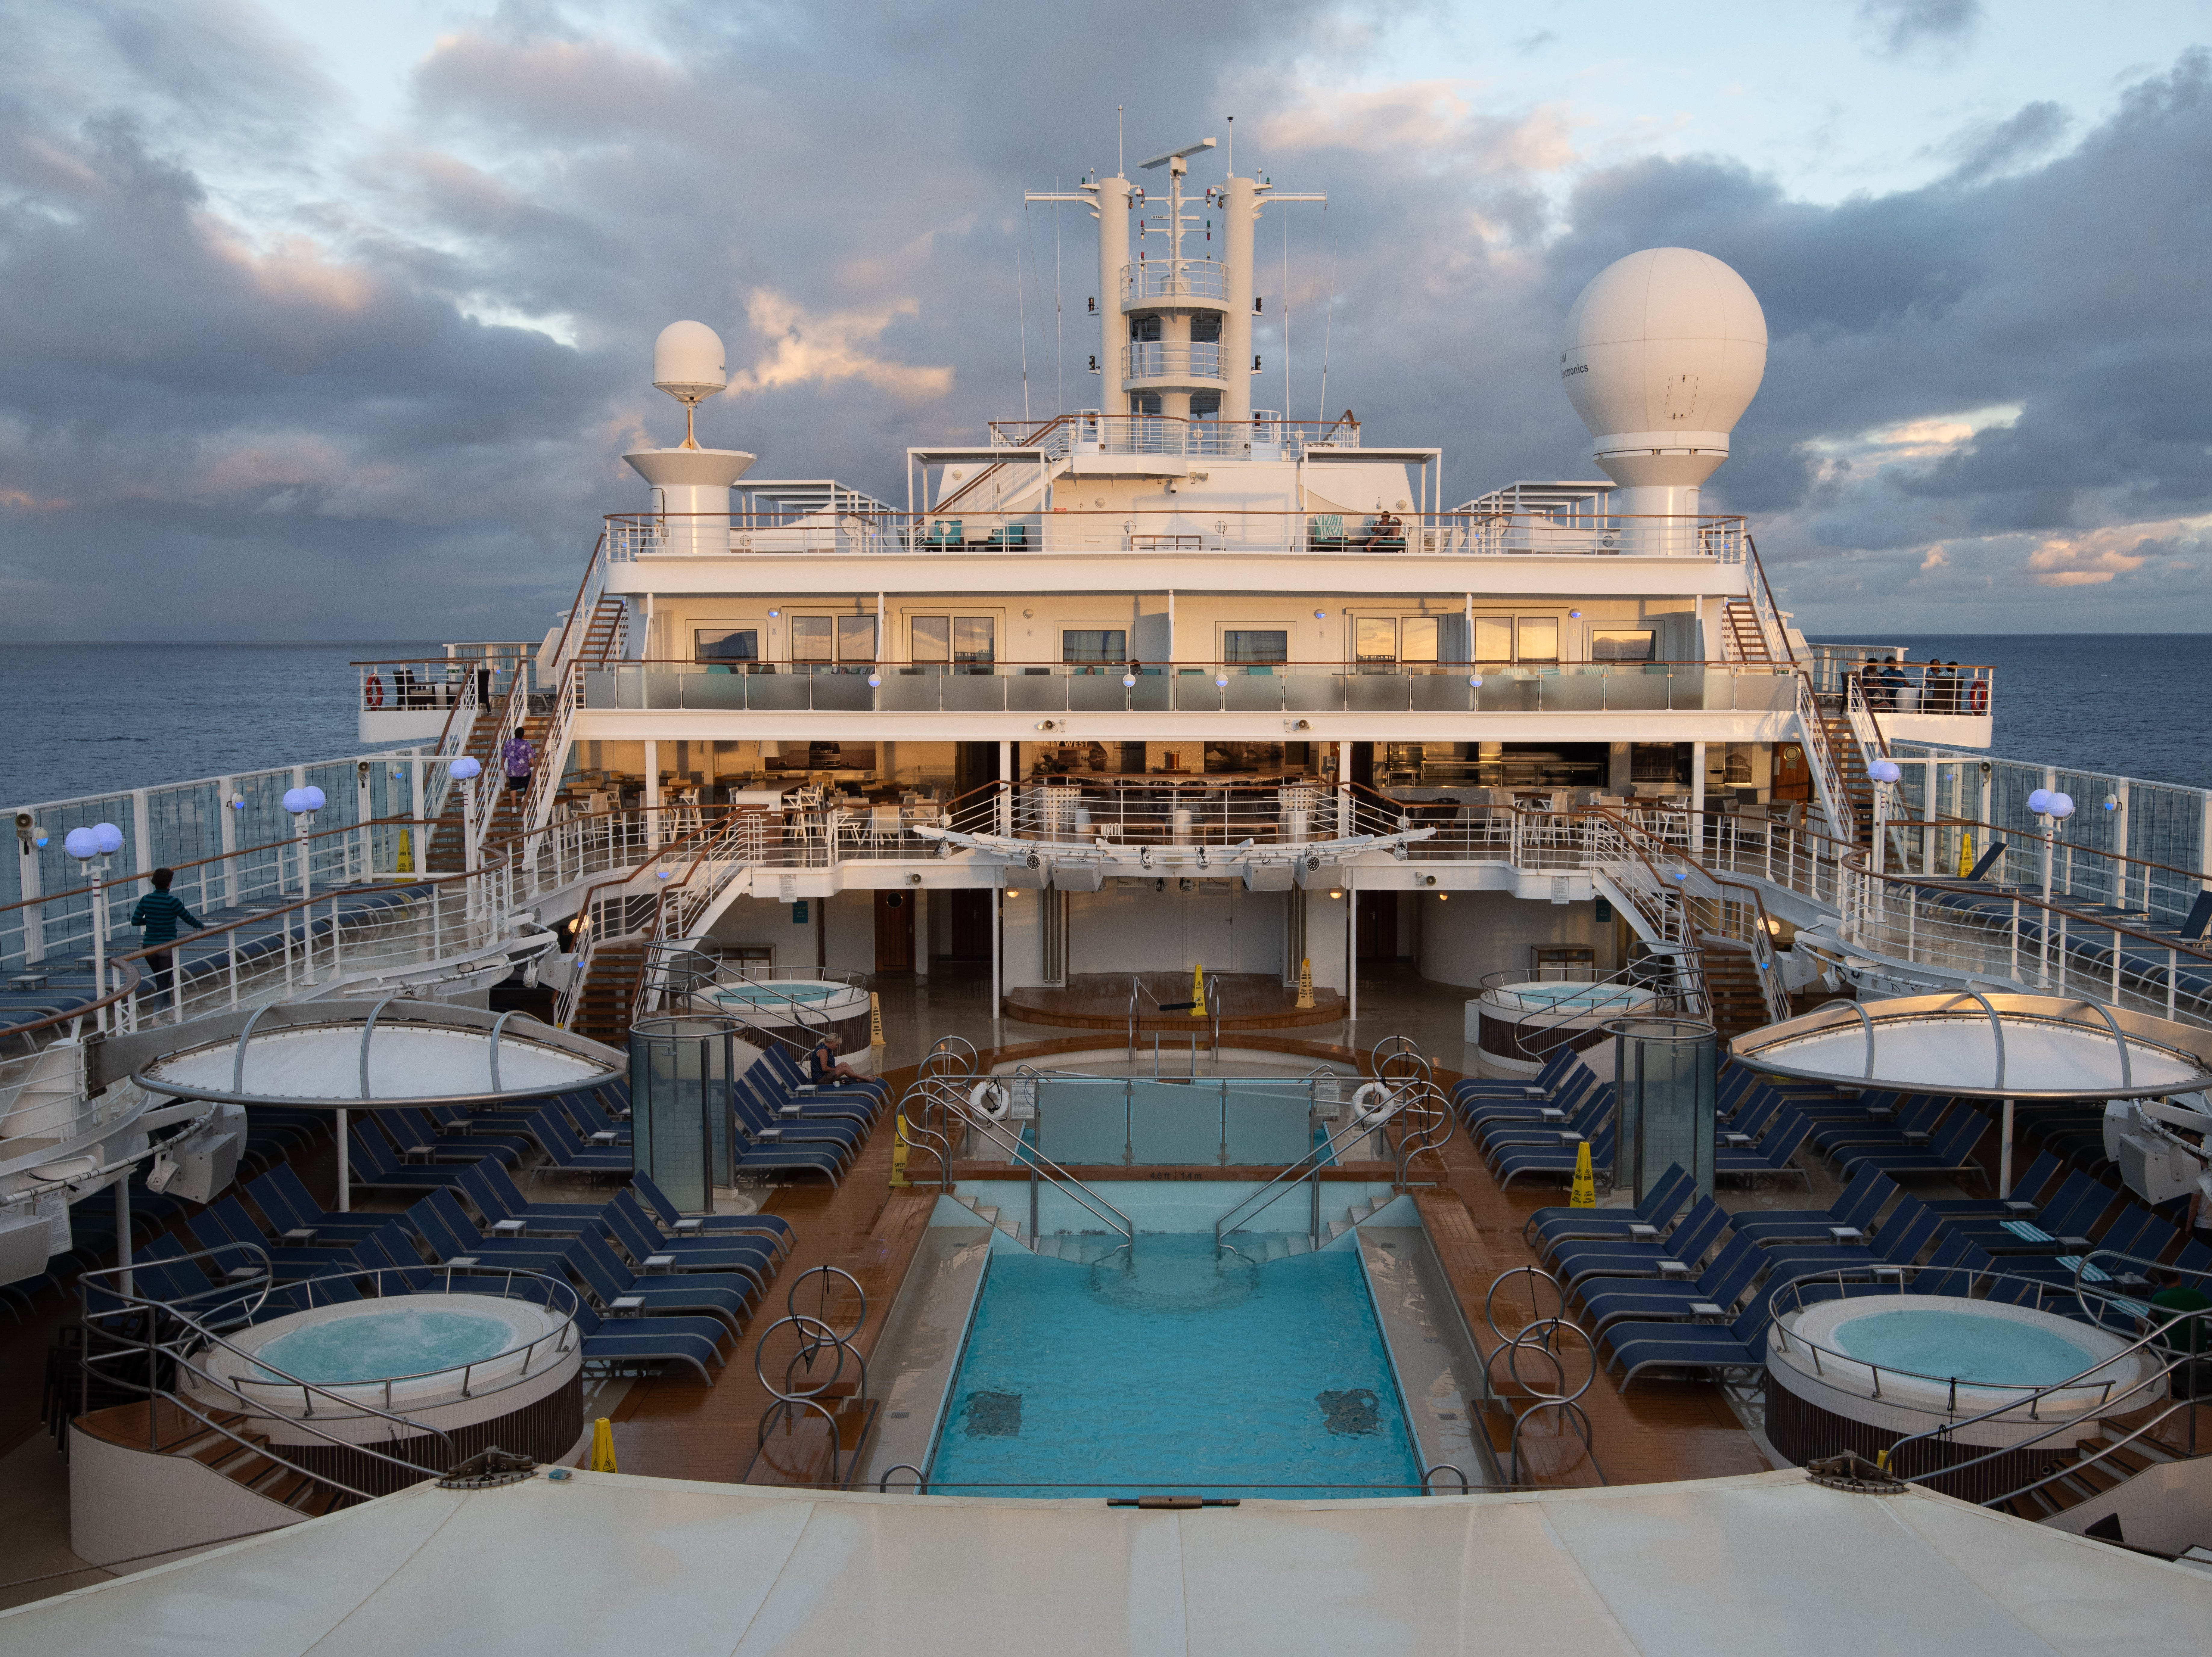 The hub of Pride of America's outdoor deck areas is the South Beack Pool zone. Located on Deck 11, it features two adjacent pools and four hot tubs -- two covered and two uncovered.